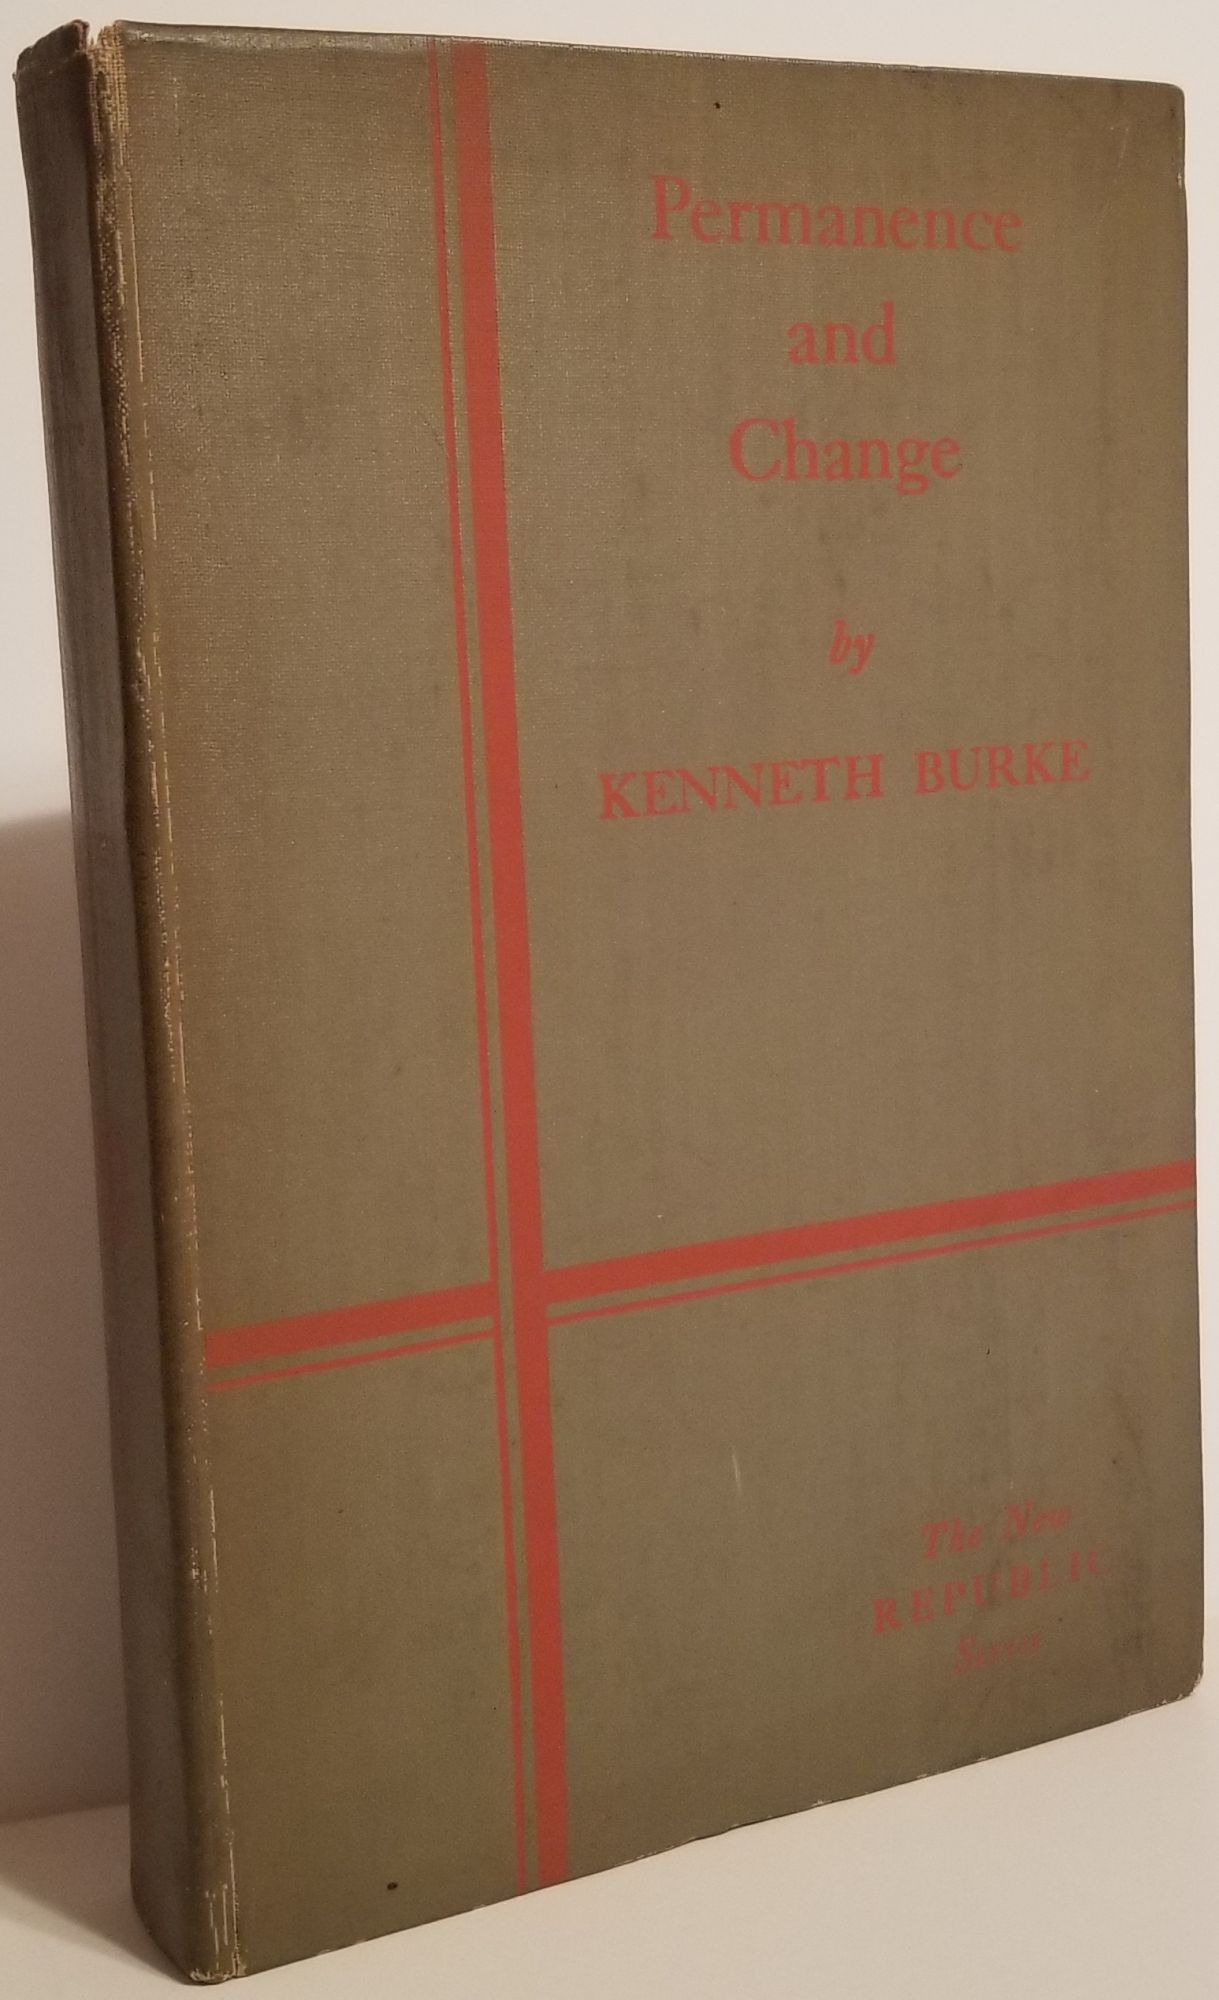 PERMANENCE AND CHANGE: An Anatomy of Purpose. Kenneth Burke.